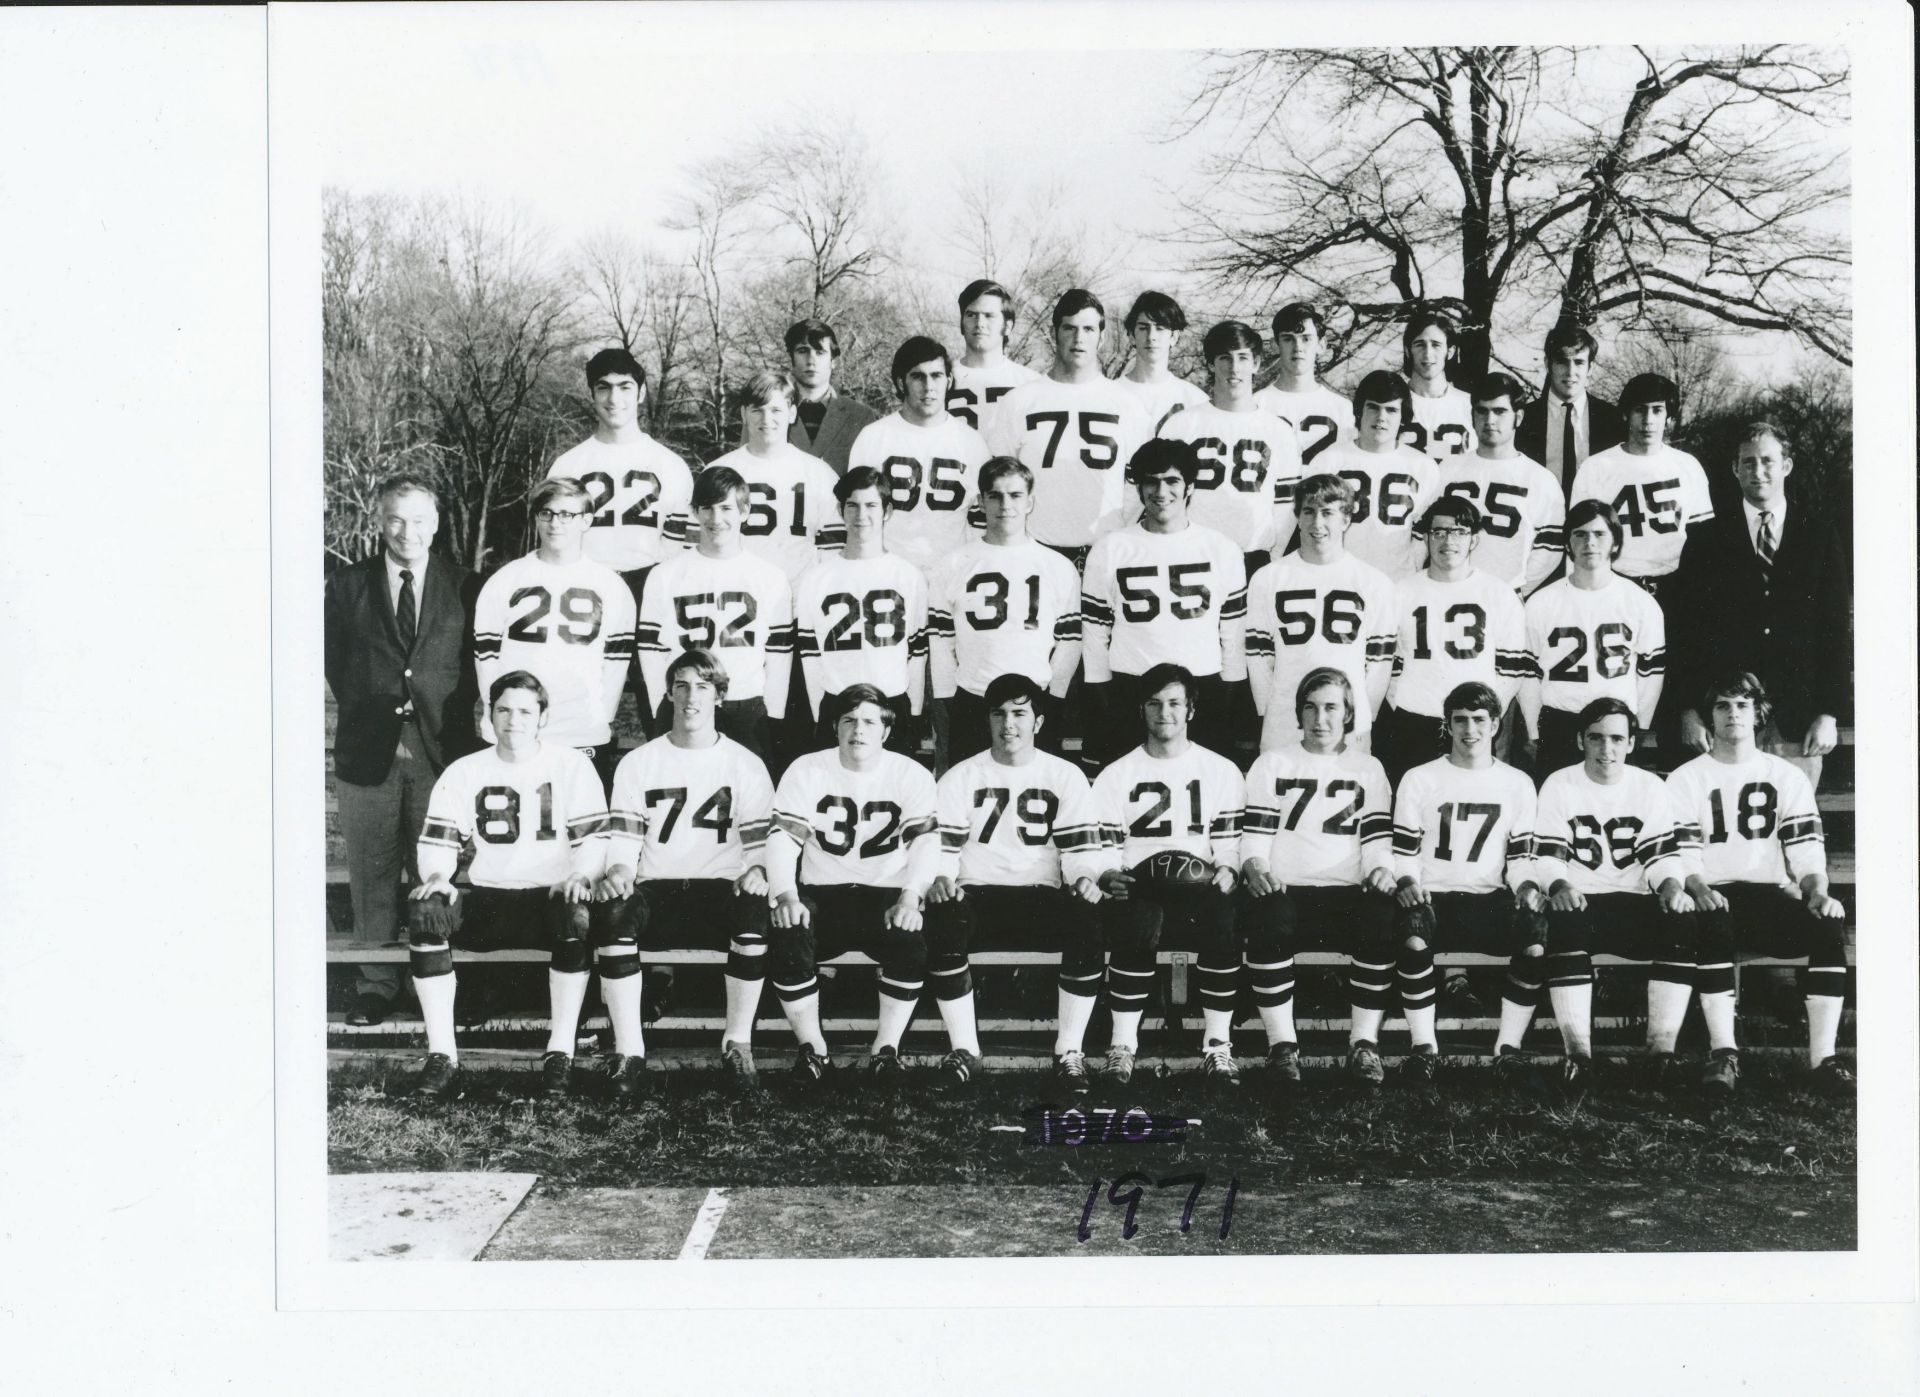 First Row: Fisher, N. Wood, Weeks, Joyal, Fox, Harrison, Hogan, St. Clair, Pettit, Second Row: Mr. Croke, Moore, Mazzone, Holton, Bankart, Dorian, Kittredge, Henes, Widing, Mr. MacKenzieThird Row;Ashjian, Ellis, Lane, Magnuson, T. Wood, Todd, Johnson, BlancoFourth Row: Hintlian, Robertson, O'Connell, Ashton, Wheaton, Amsbary